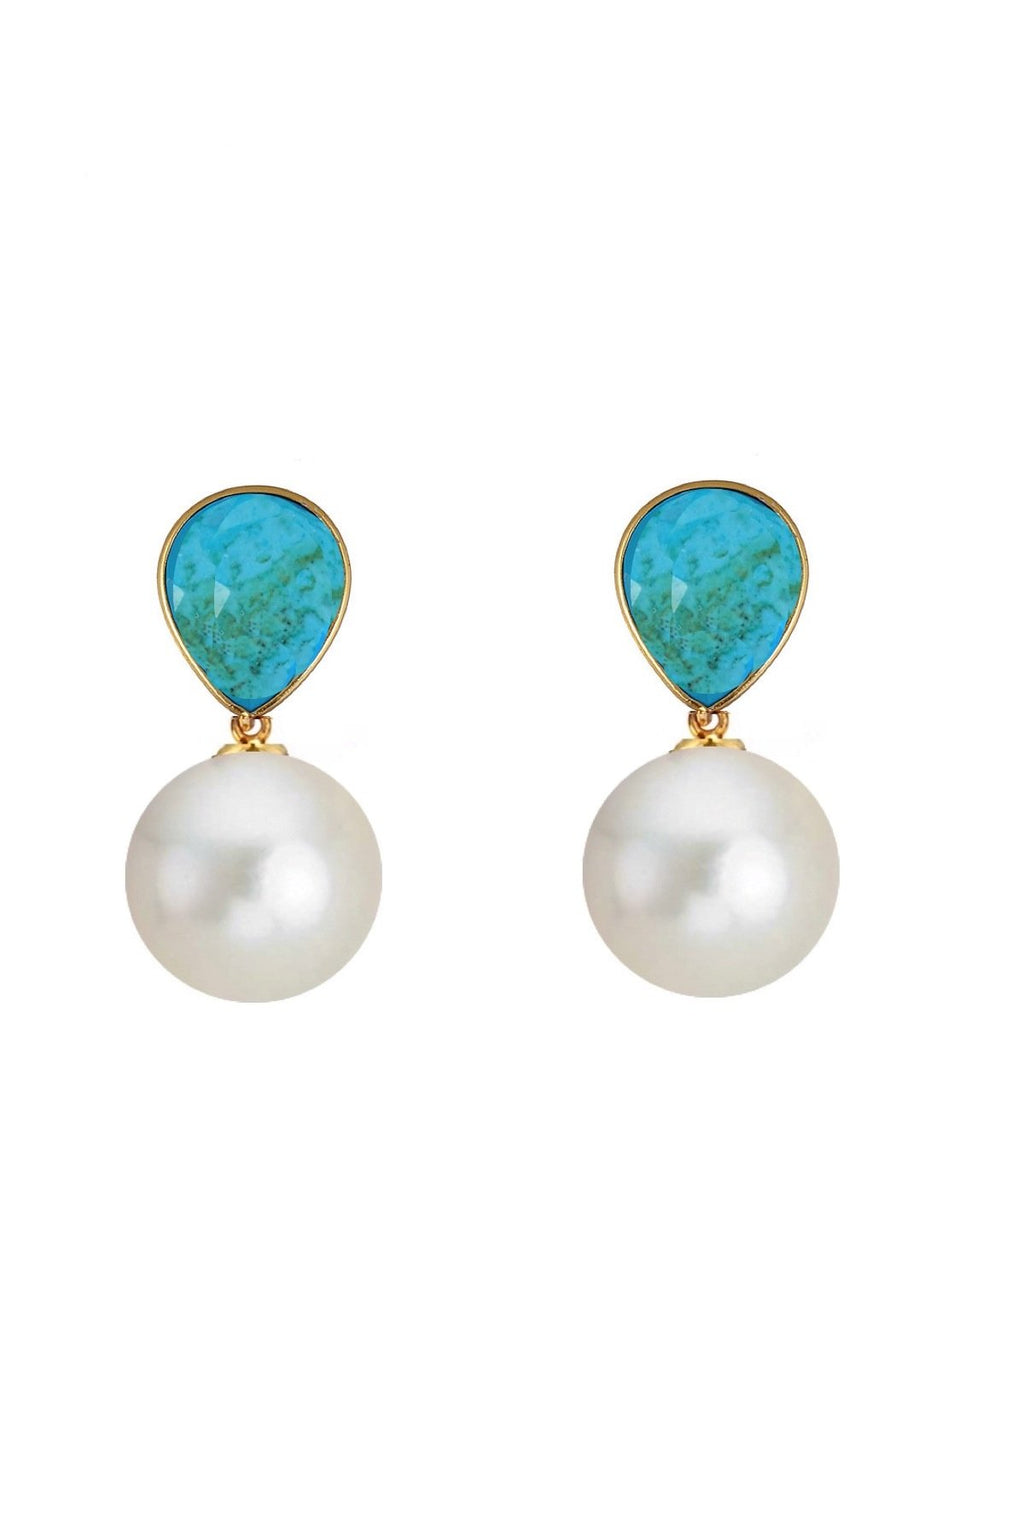 18K Gold Turquoise & Pearl Drop Earrings